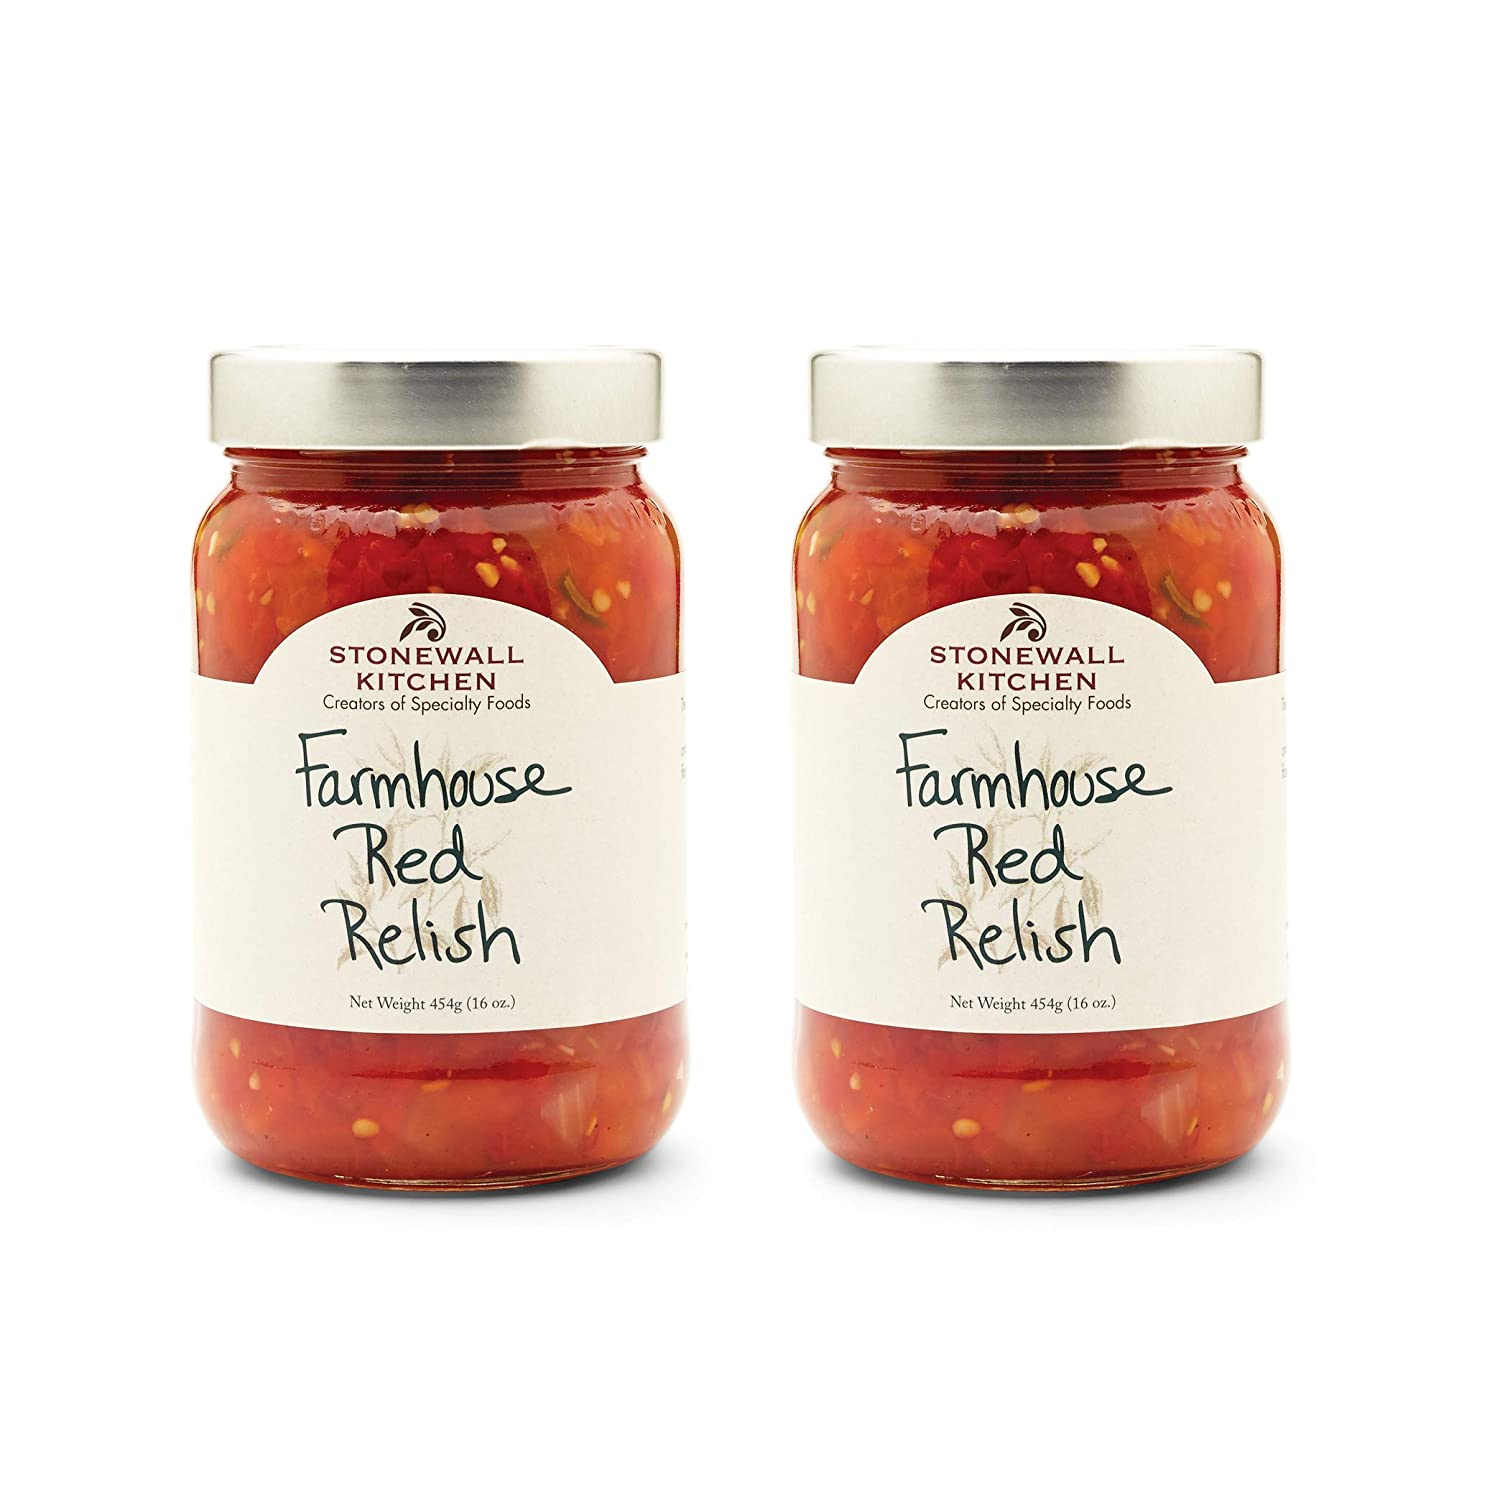 Stonewall Kitchen Farmhouse Red Relish, 16 Ounces (Pack of 2)